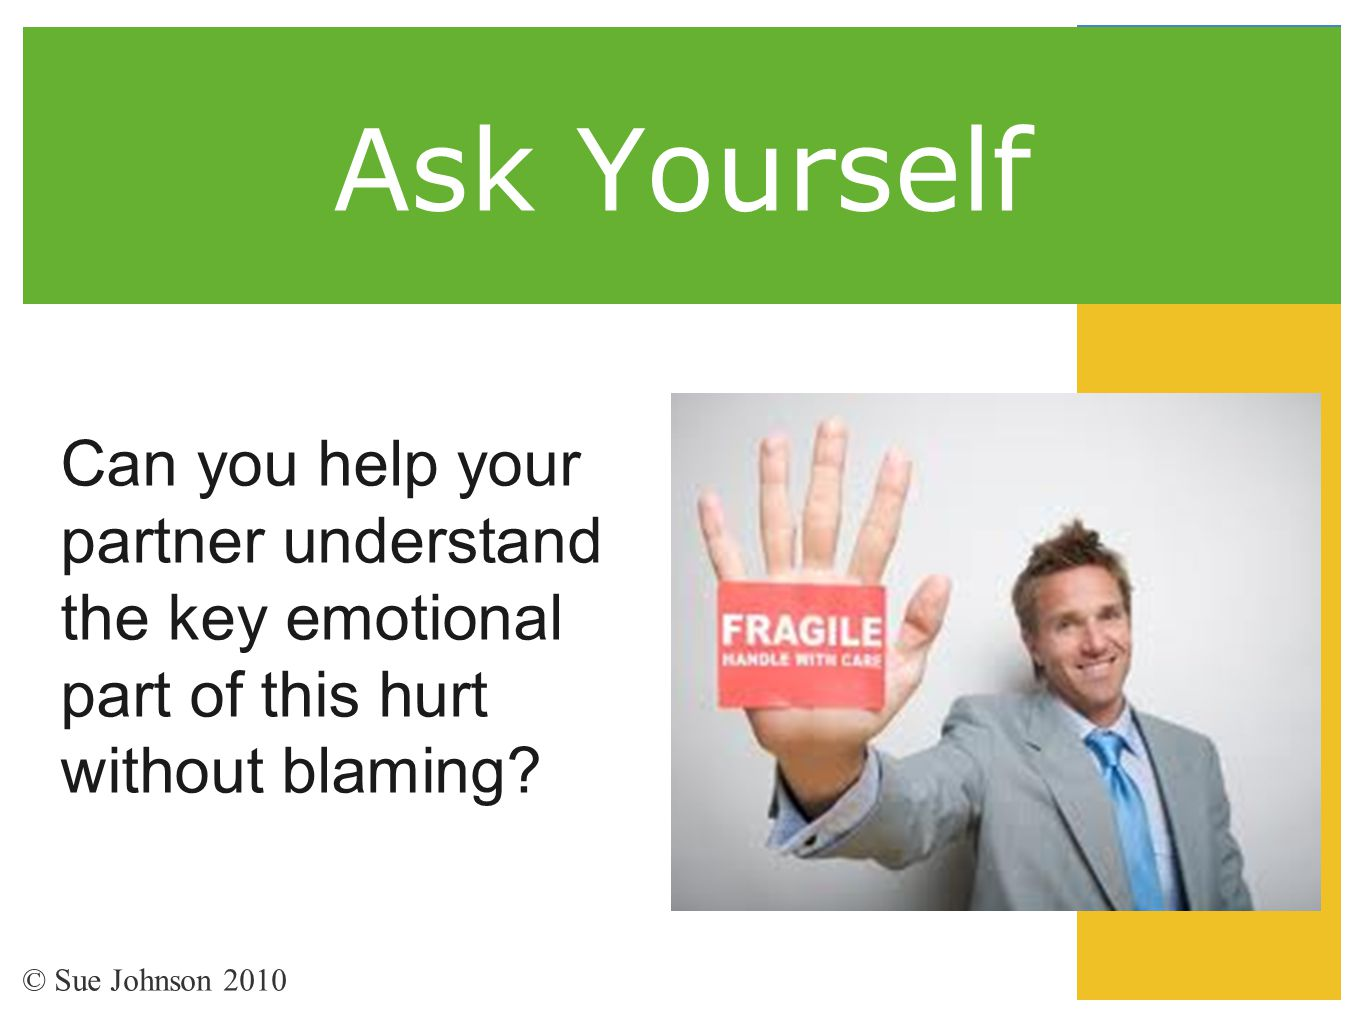 Ask Yourself Can you help your partner understand the key emotional part of this hurt without blaming